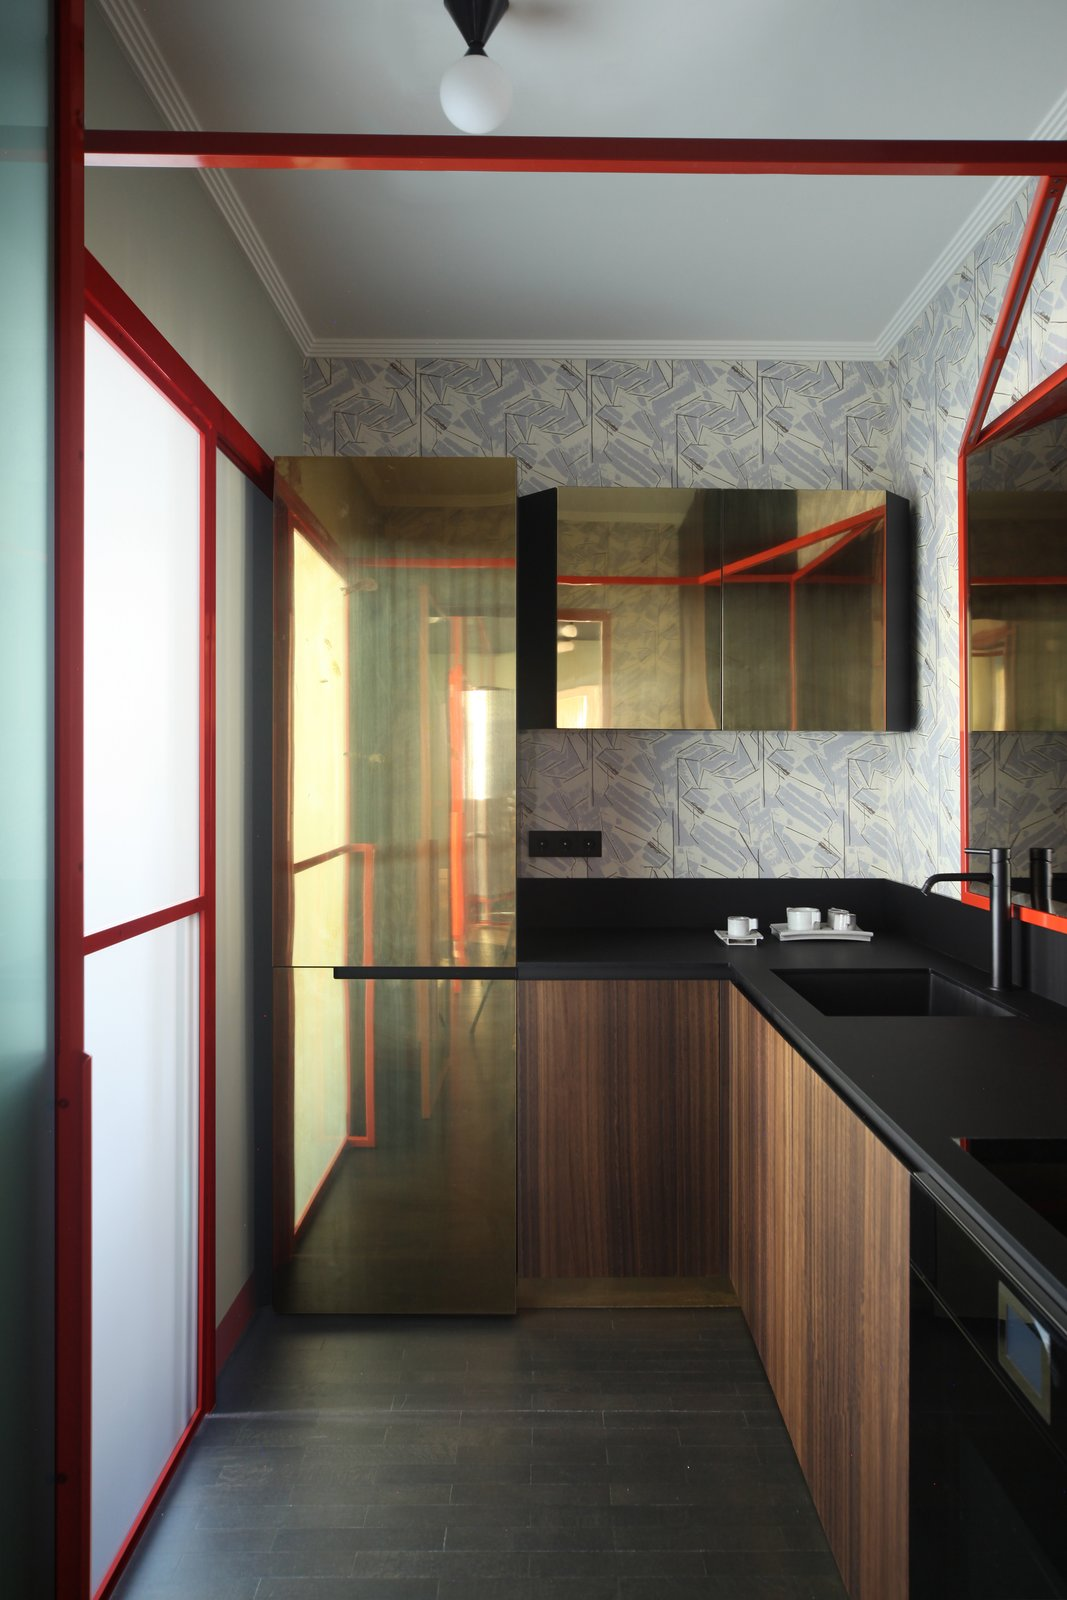 Kitchen, Laminate, Ceiling, Refrigerator, Drop In, Dark Hardwood, and Metal Kitchen: doors in eucalyptus wood and brass, countertop in high-thickness laminate Polaris by Abet, designed by Marcante-Testa, built by Materia Design and Om Project, faucets from Bellosta, lighting from Atelier Areti.  Best Kitchen Refrigerator Metal Photos from This Venetian Apartment Is Bursting With Incredible European Furnishings